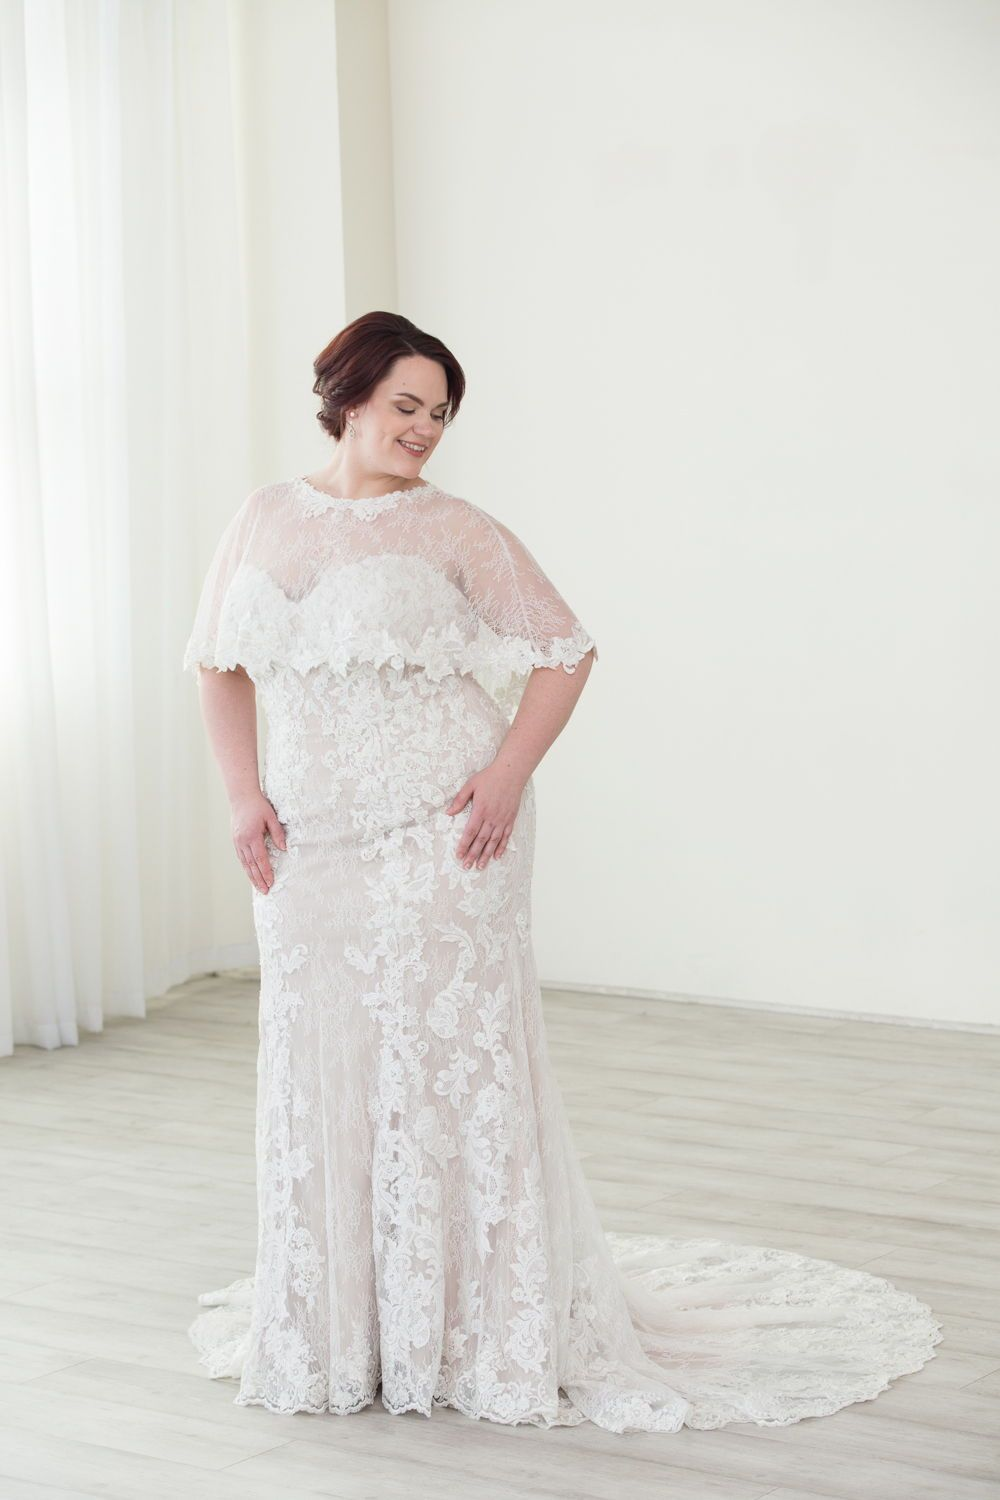 90ec1279dda29 Gorgeous fitted plus size wedding dress. Strapless lace wedding dress with  a capelet. Winter vibes in this plus size wedding gown from Justin  Alexander.